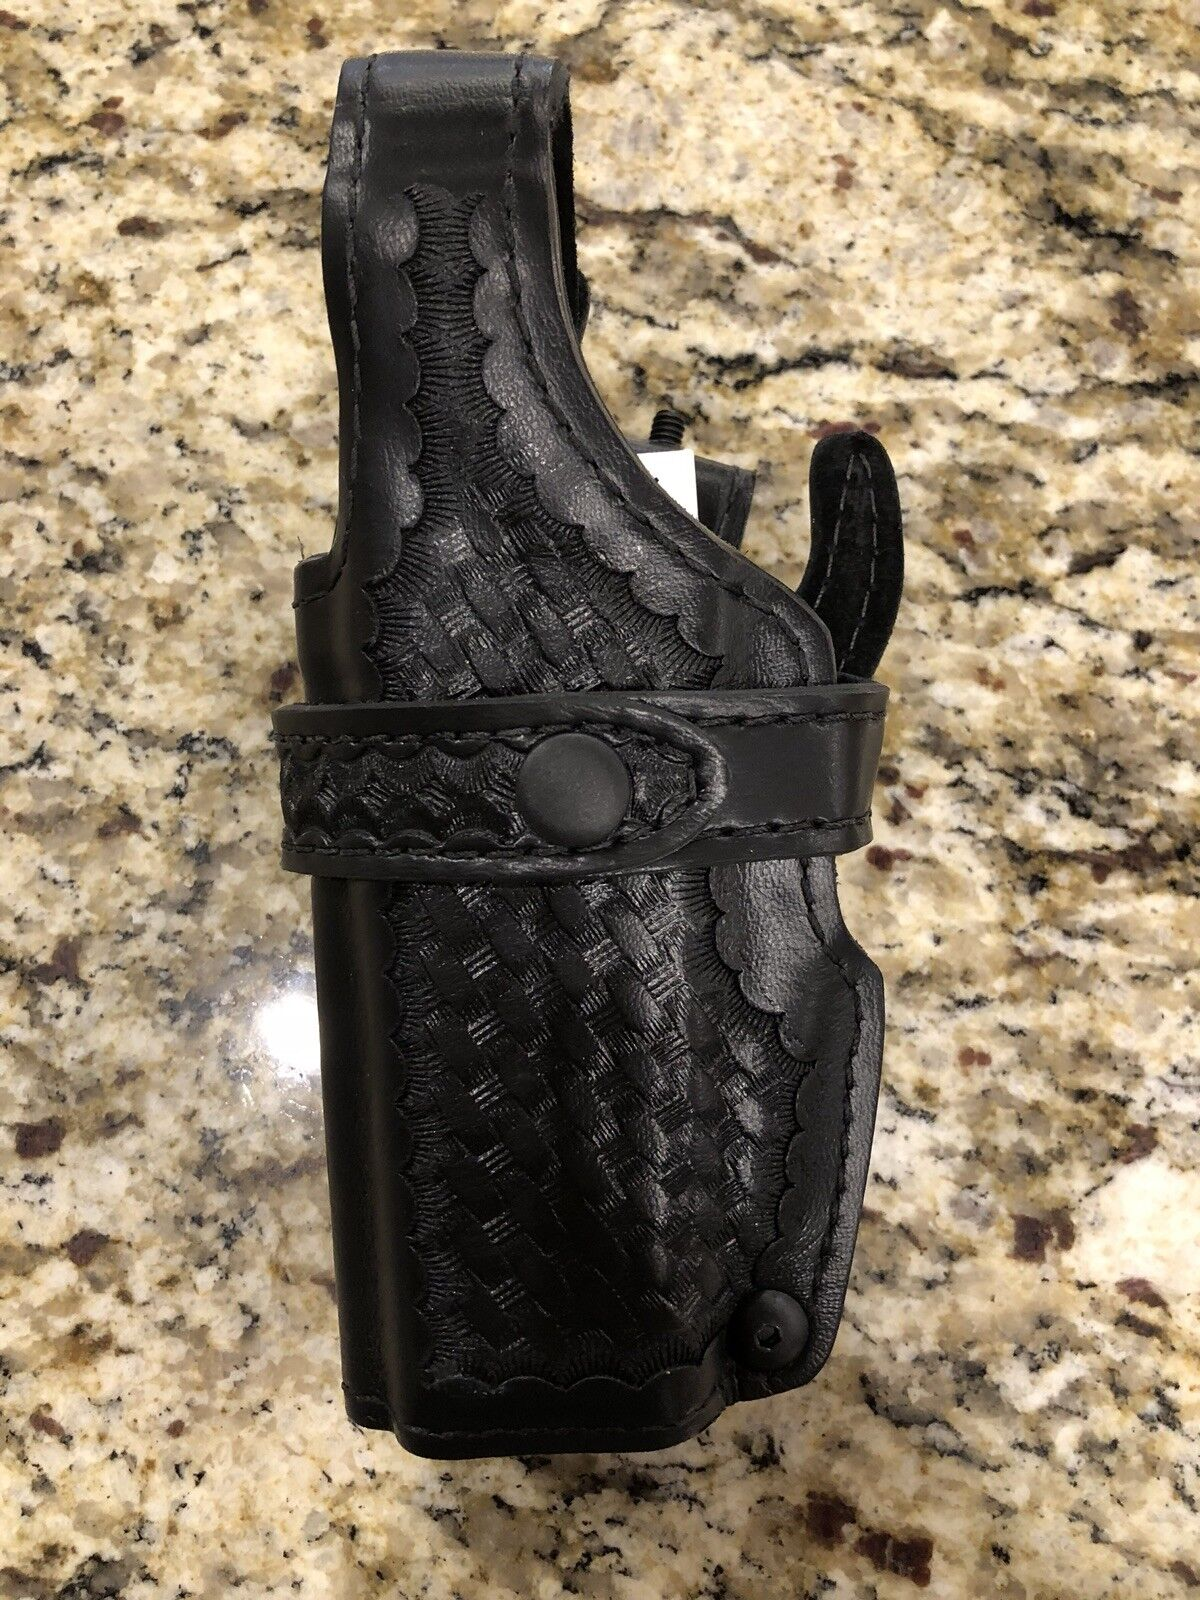 Safariland Duty Holster Mid-Ride Level III Retention 070-383-182 Left Hand NEW NEW Hand 36bed3